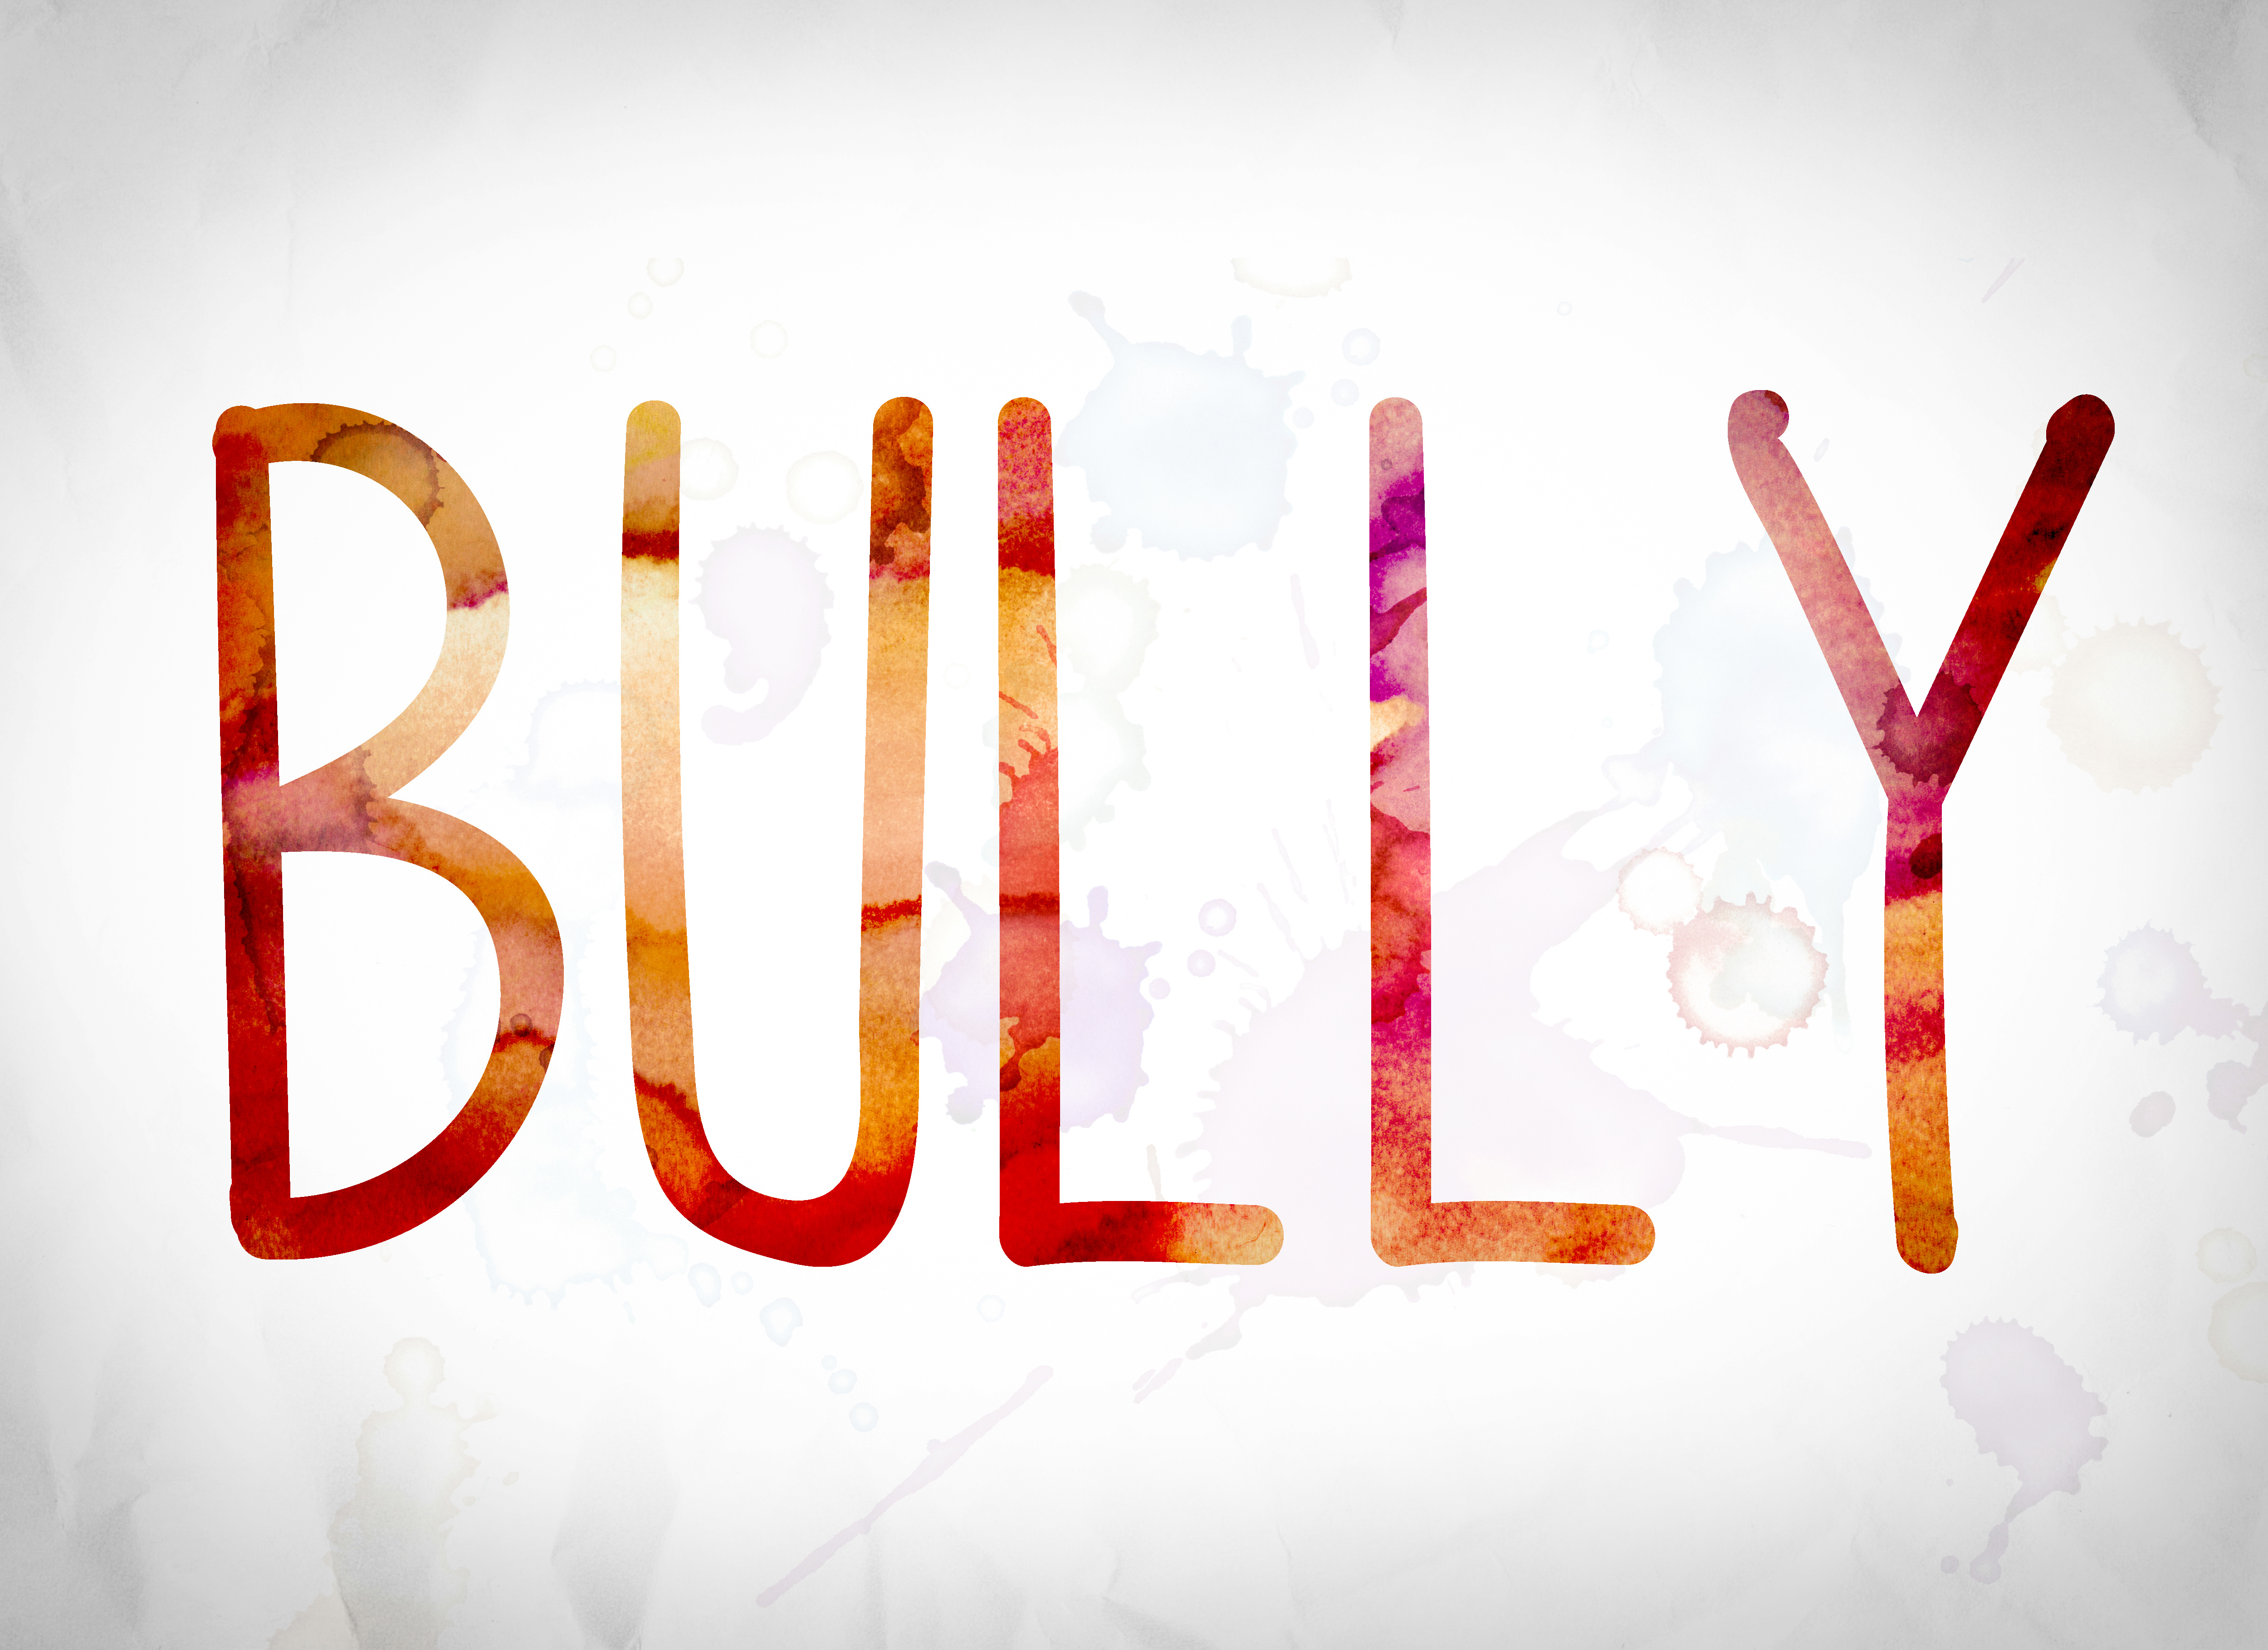 Fape Does Not Include Religious And >> Bullying And Harassment Of Students With Disabilities Pave